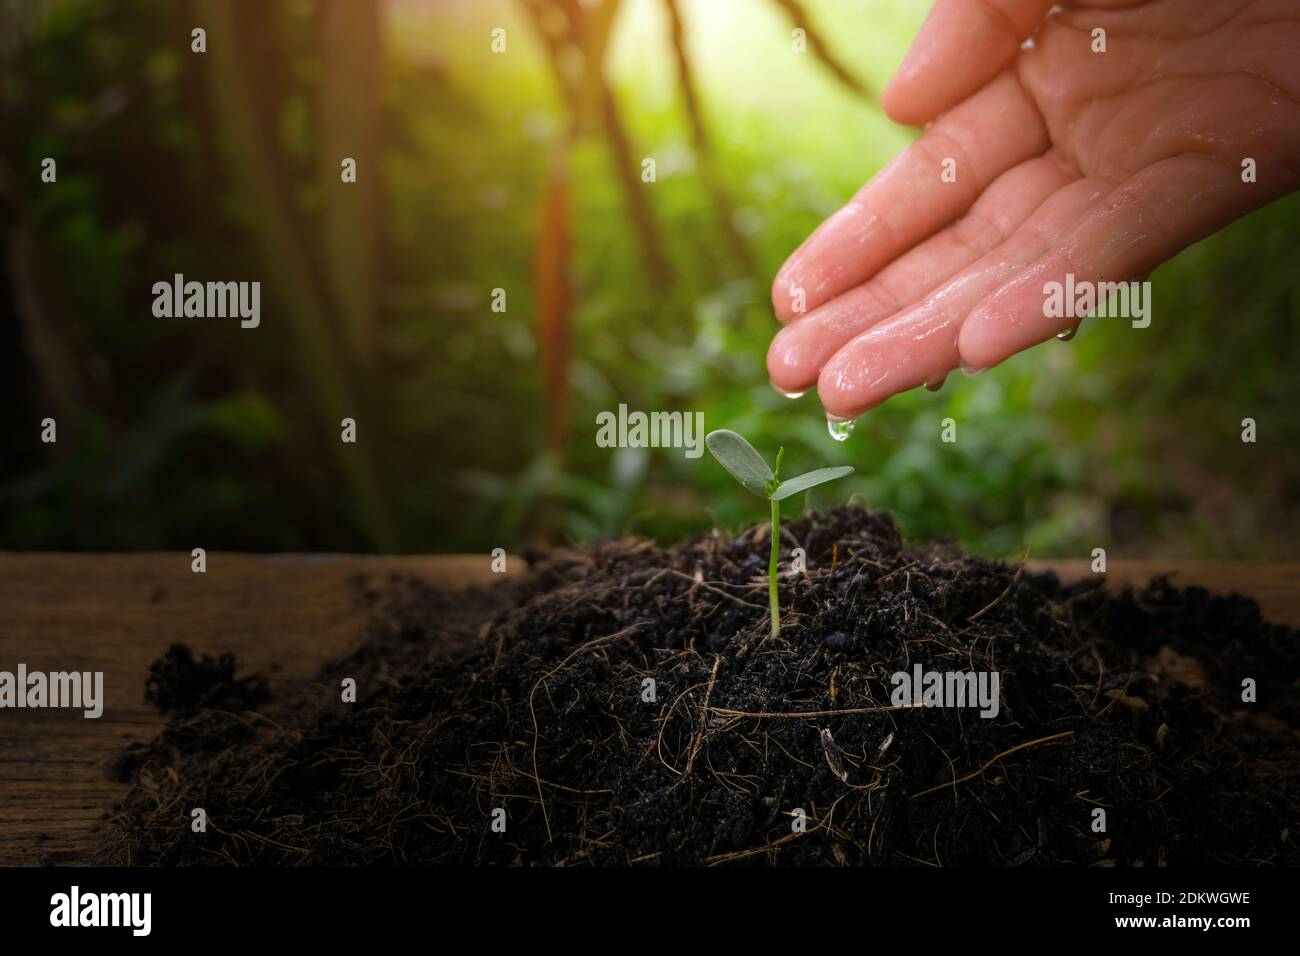 Close-up Of Hand Watering Seedling On Field Stock Photo